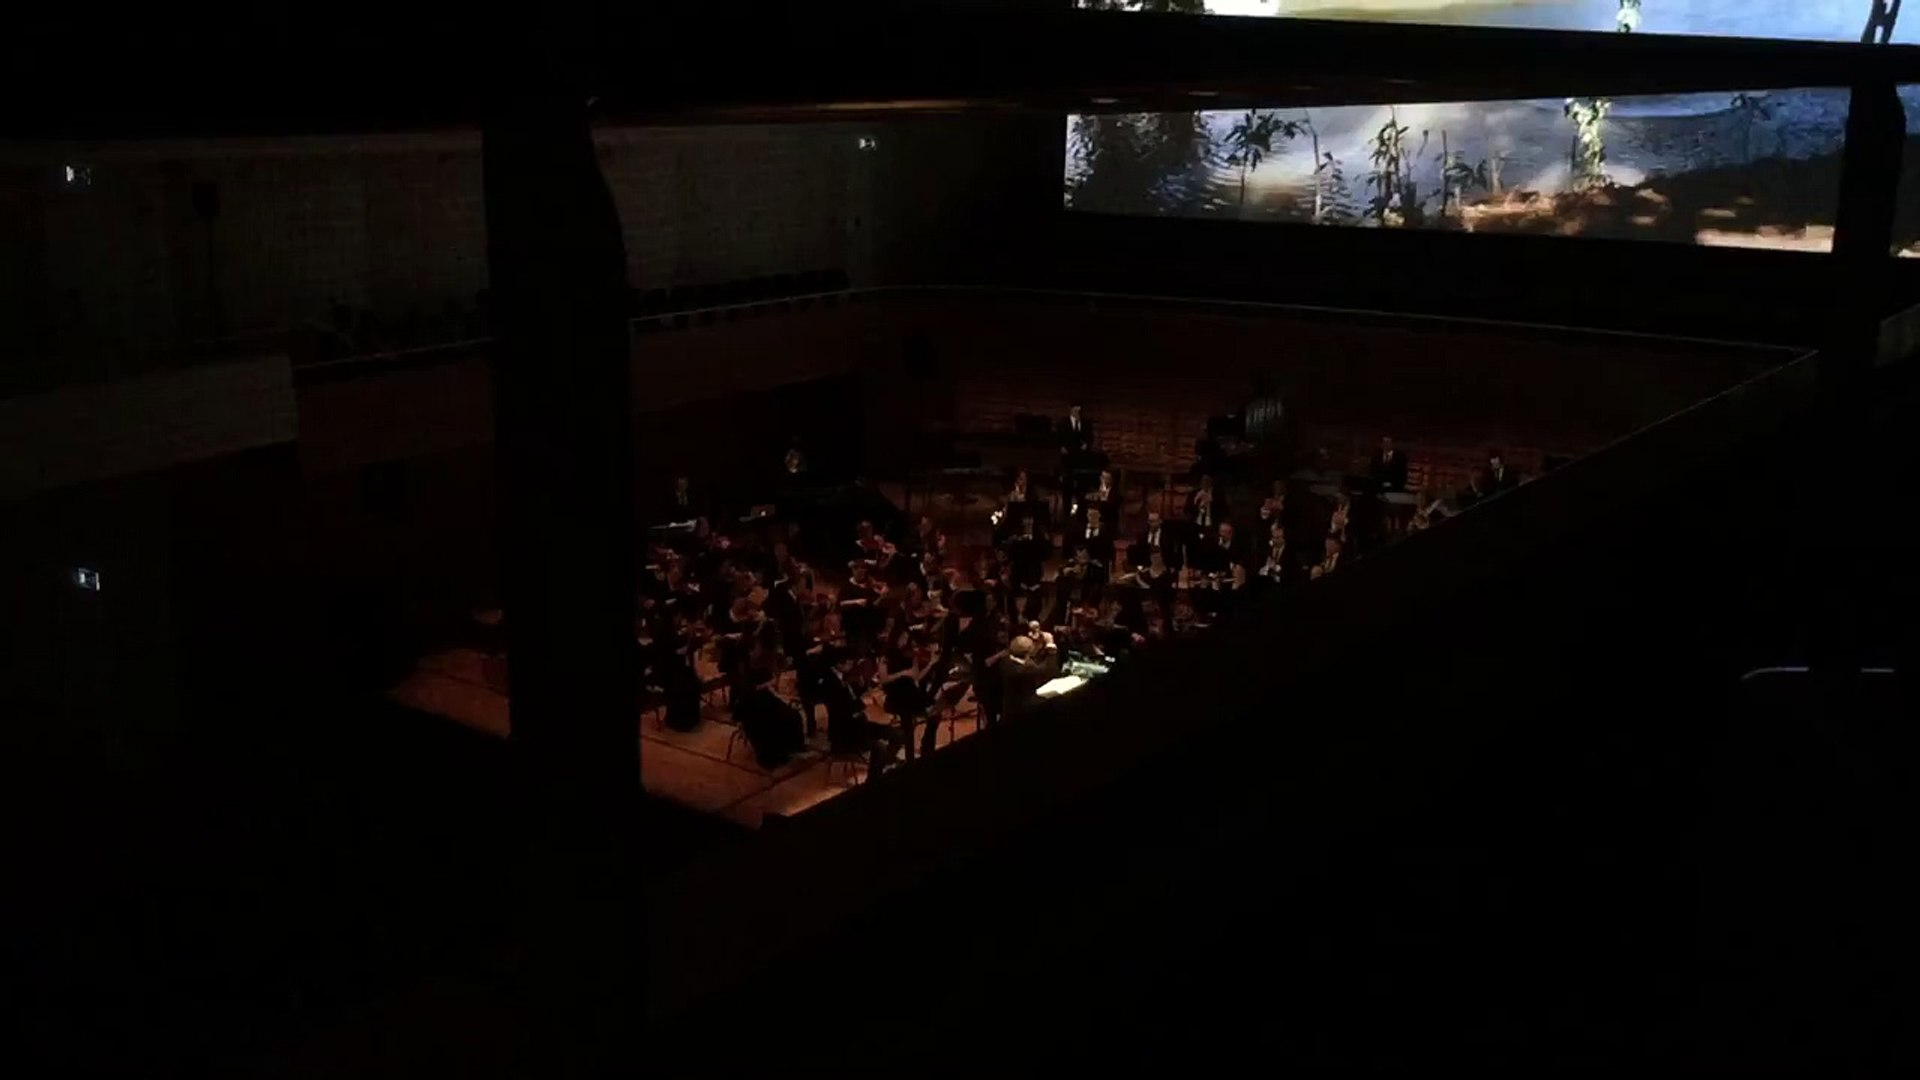 Indiana Jones - Live - The Raiders March - John Williams - 21st Century Symphony Orchestra